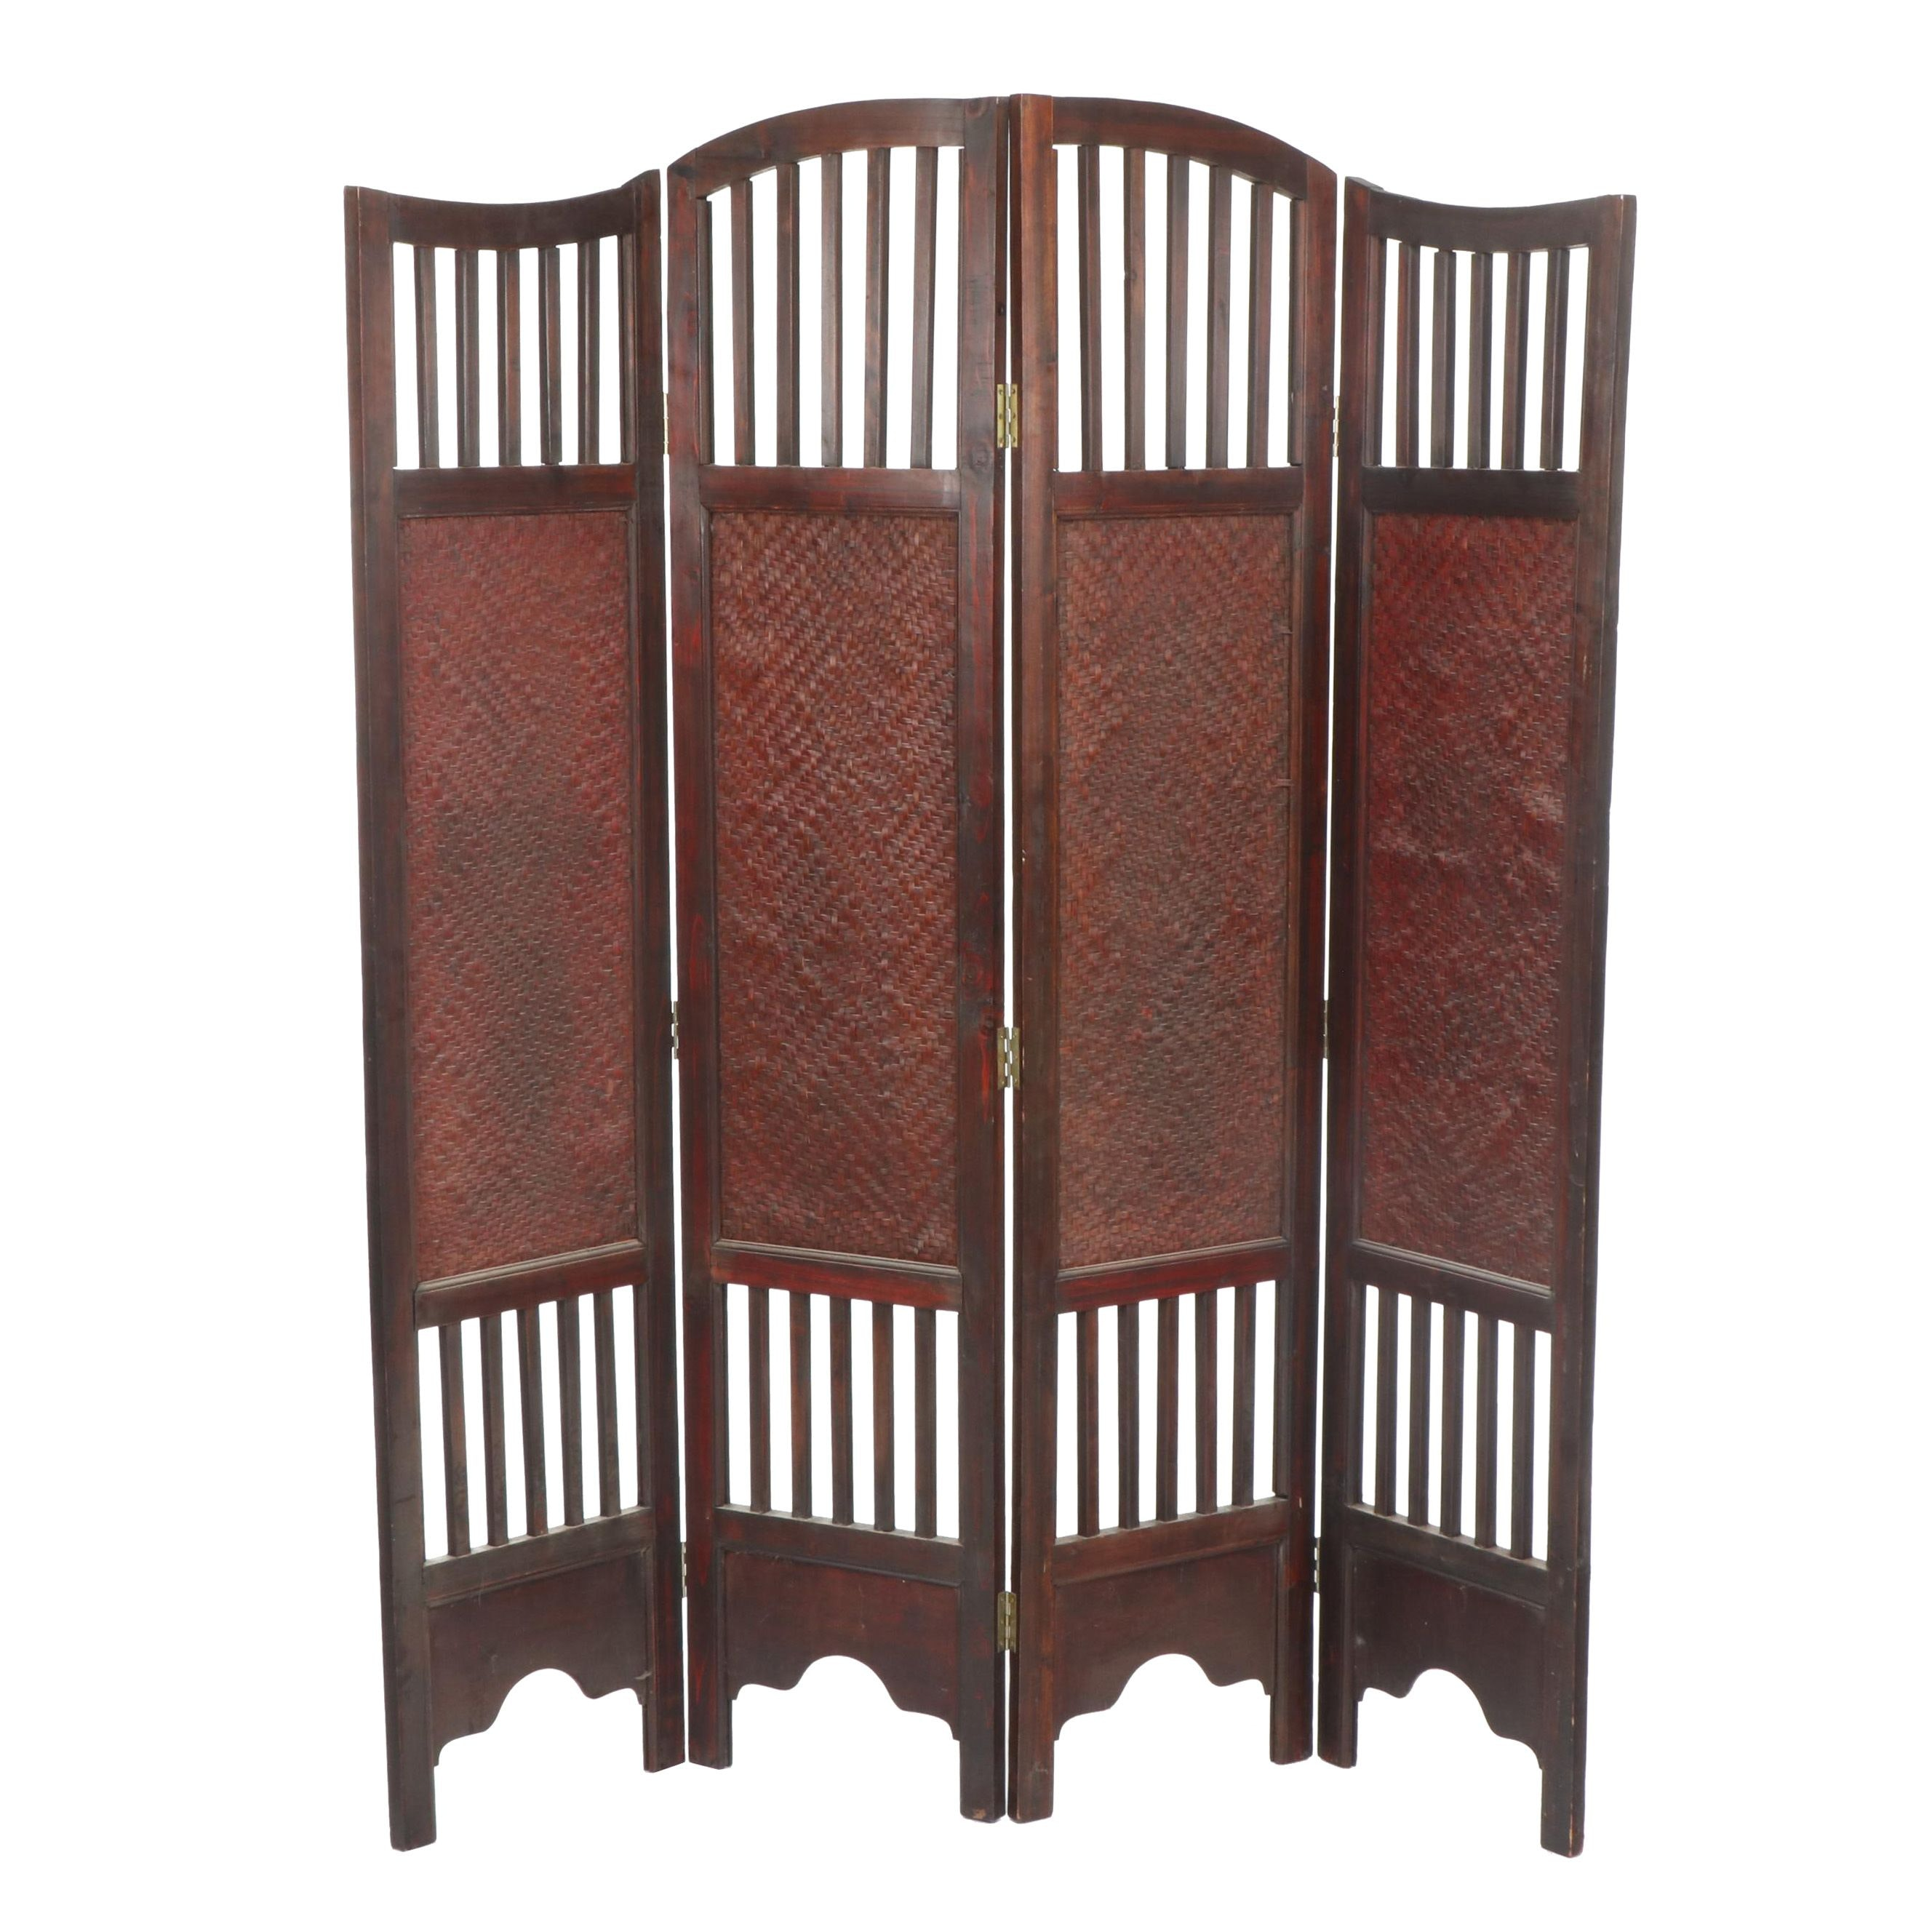 Cherry Stained Eastlake Style Wood and Cane Divider